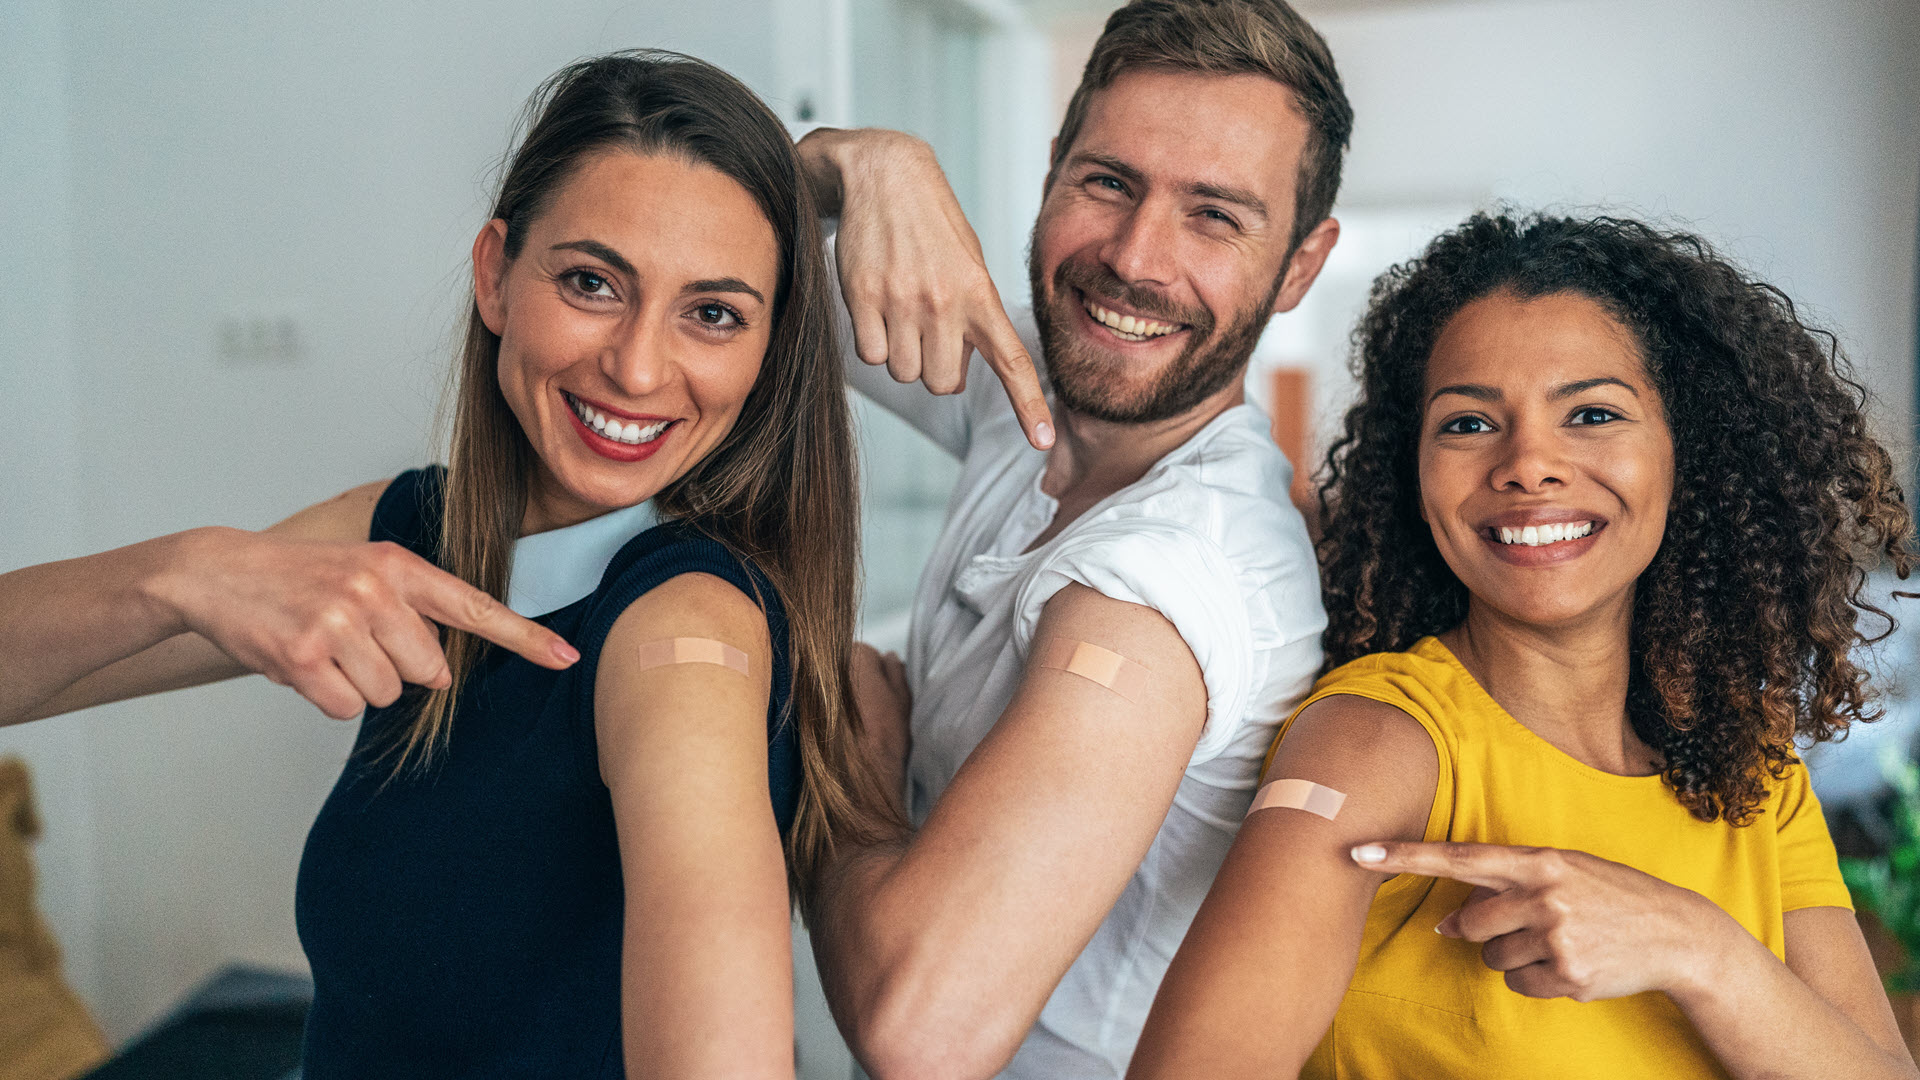 Friends in their twenties proudly showing they have been vaccinated